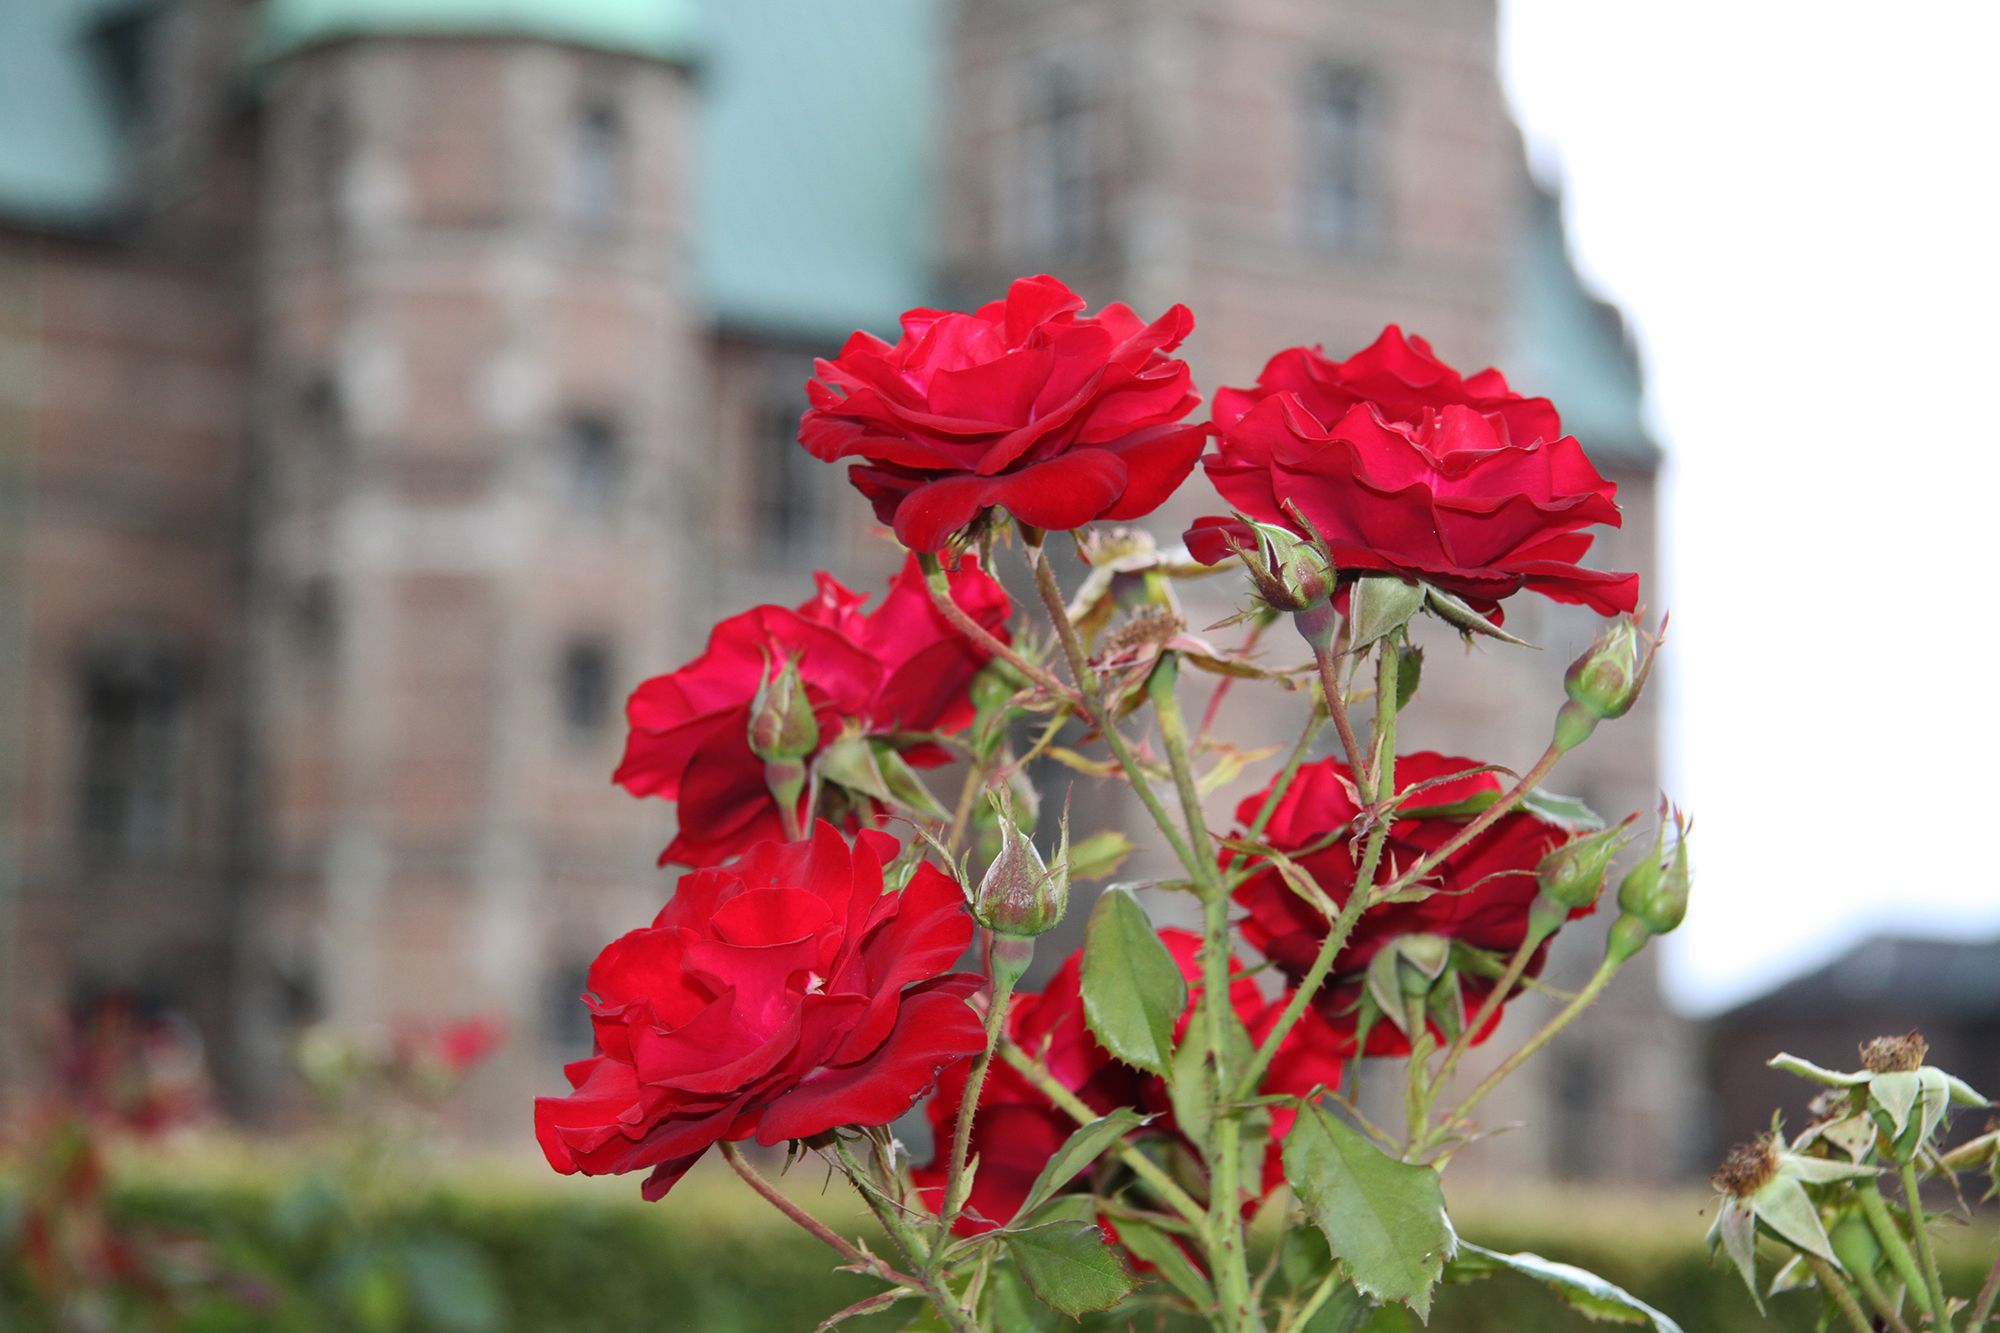 In Christian symbolism, the rose stands both for innocent religious love and passionate love, and one might say this reflected the intentions of the warlike and love-seeking king.  Copyright: Rosenborg Castle / Rosenborg Slot